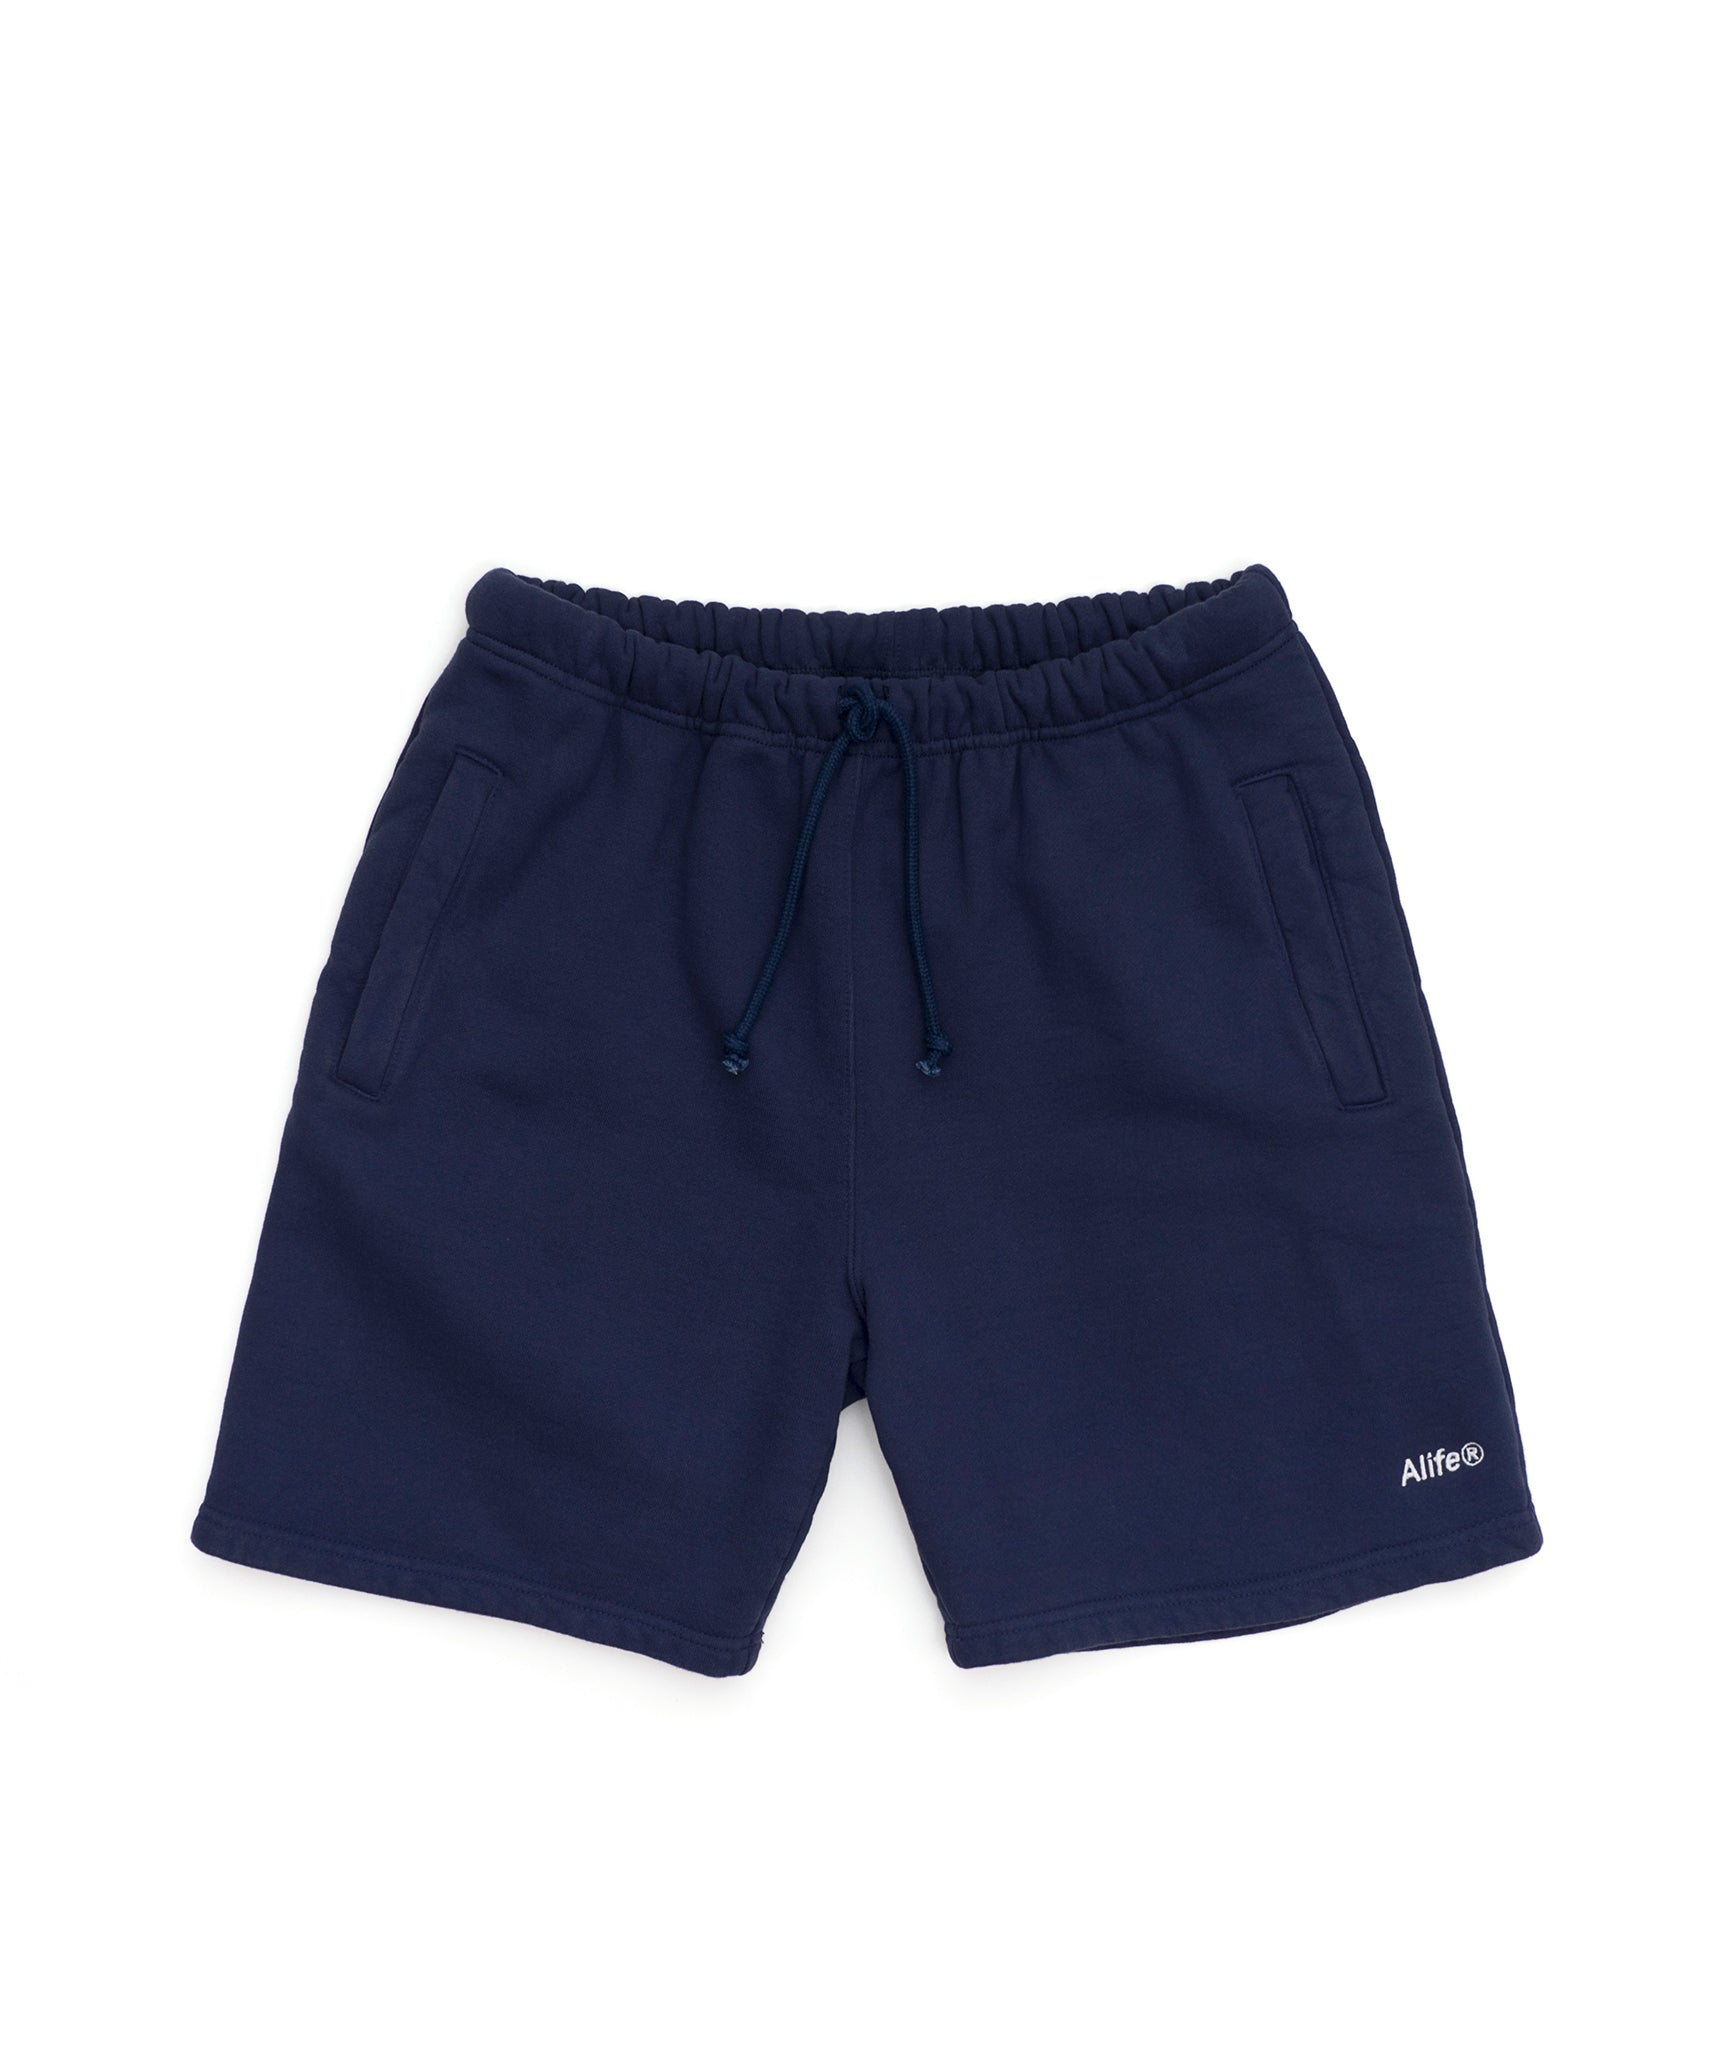 Alife Basics Fleece Short